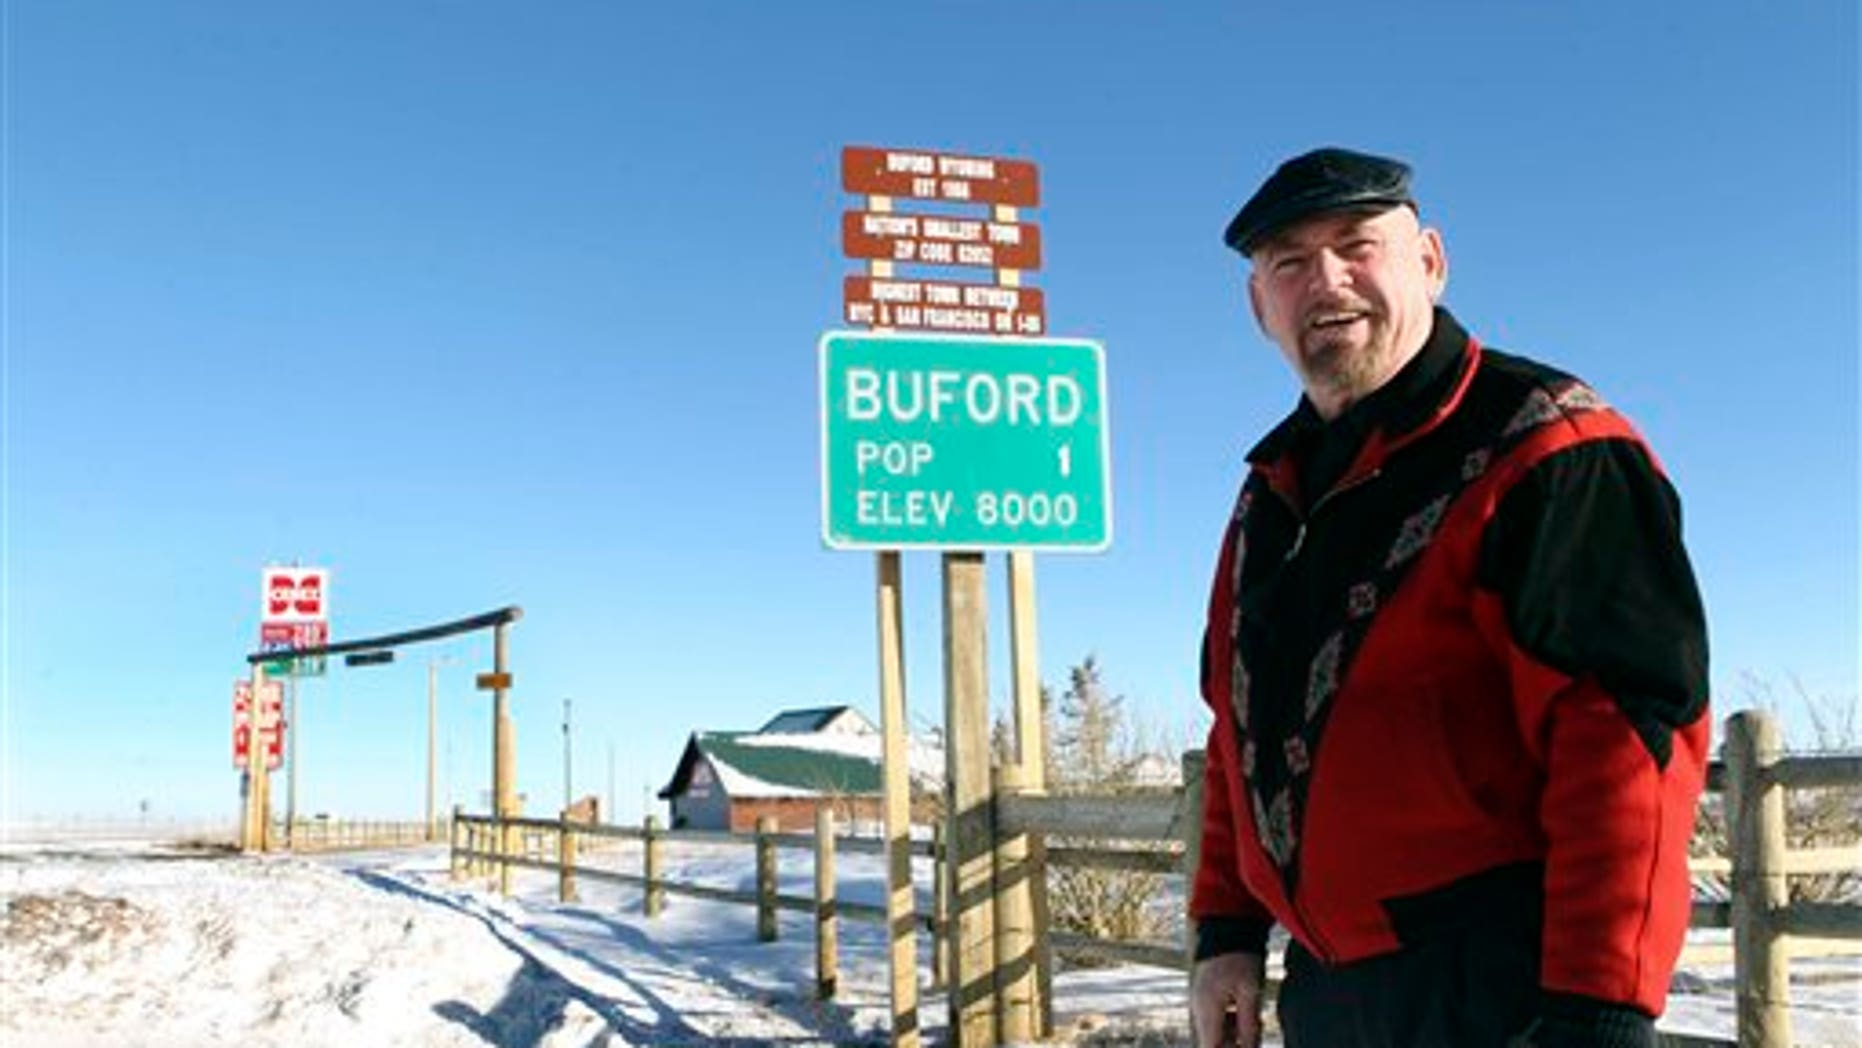 FILE  -  This Jan. 1, 2011 file photo shows Buford resident Don Sammons standing in front of the population sign in Buford, Wyo.